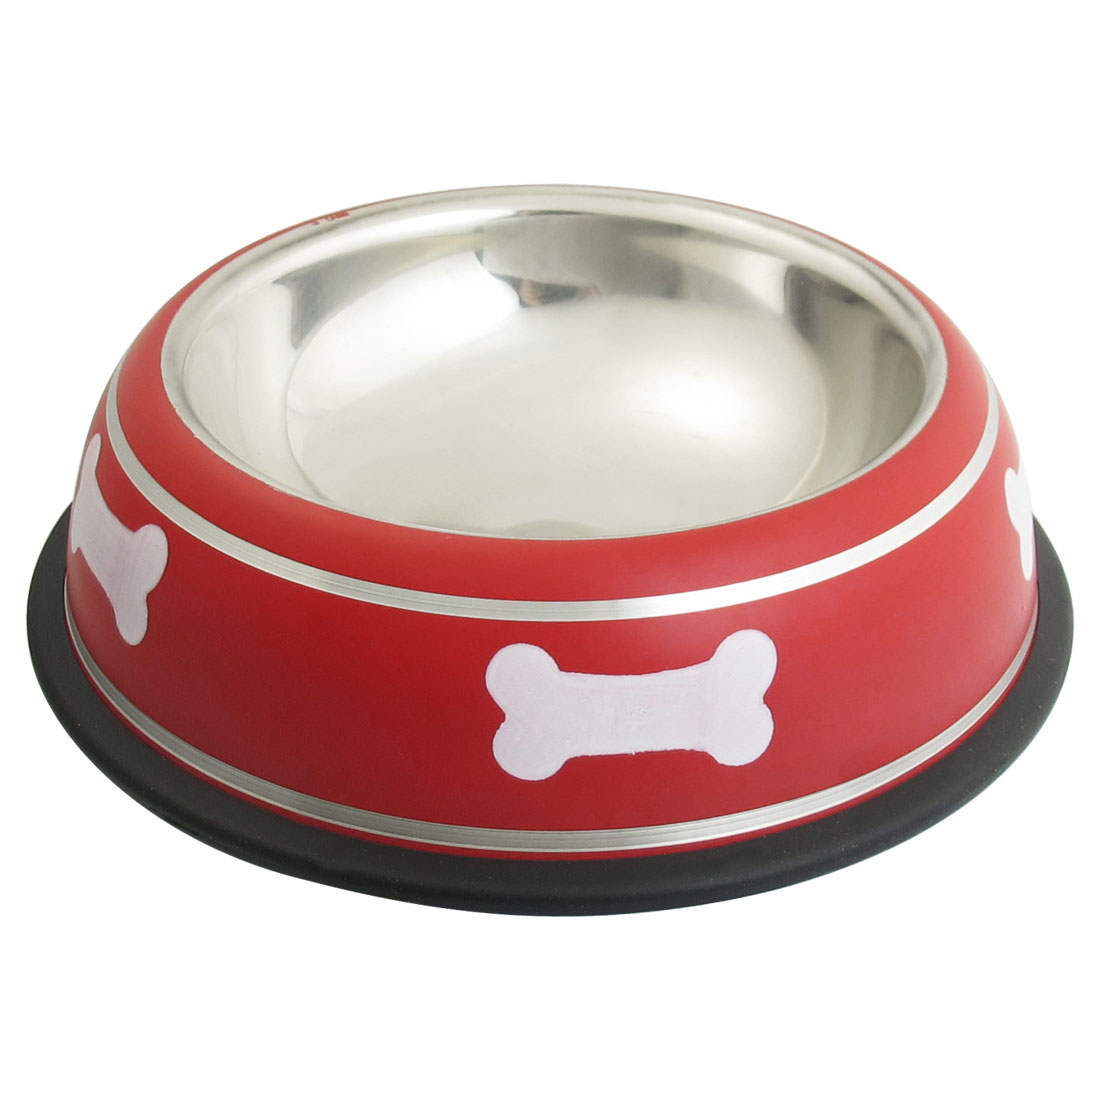 Unique Bargains Stainless Steel Bone Print Nonslip Base Cat Pet Dog Water Food Bowl Red